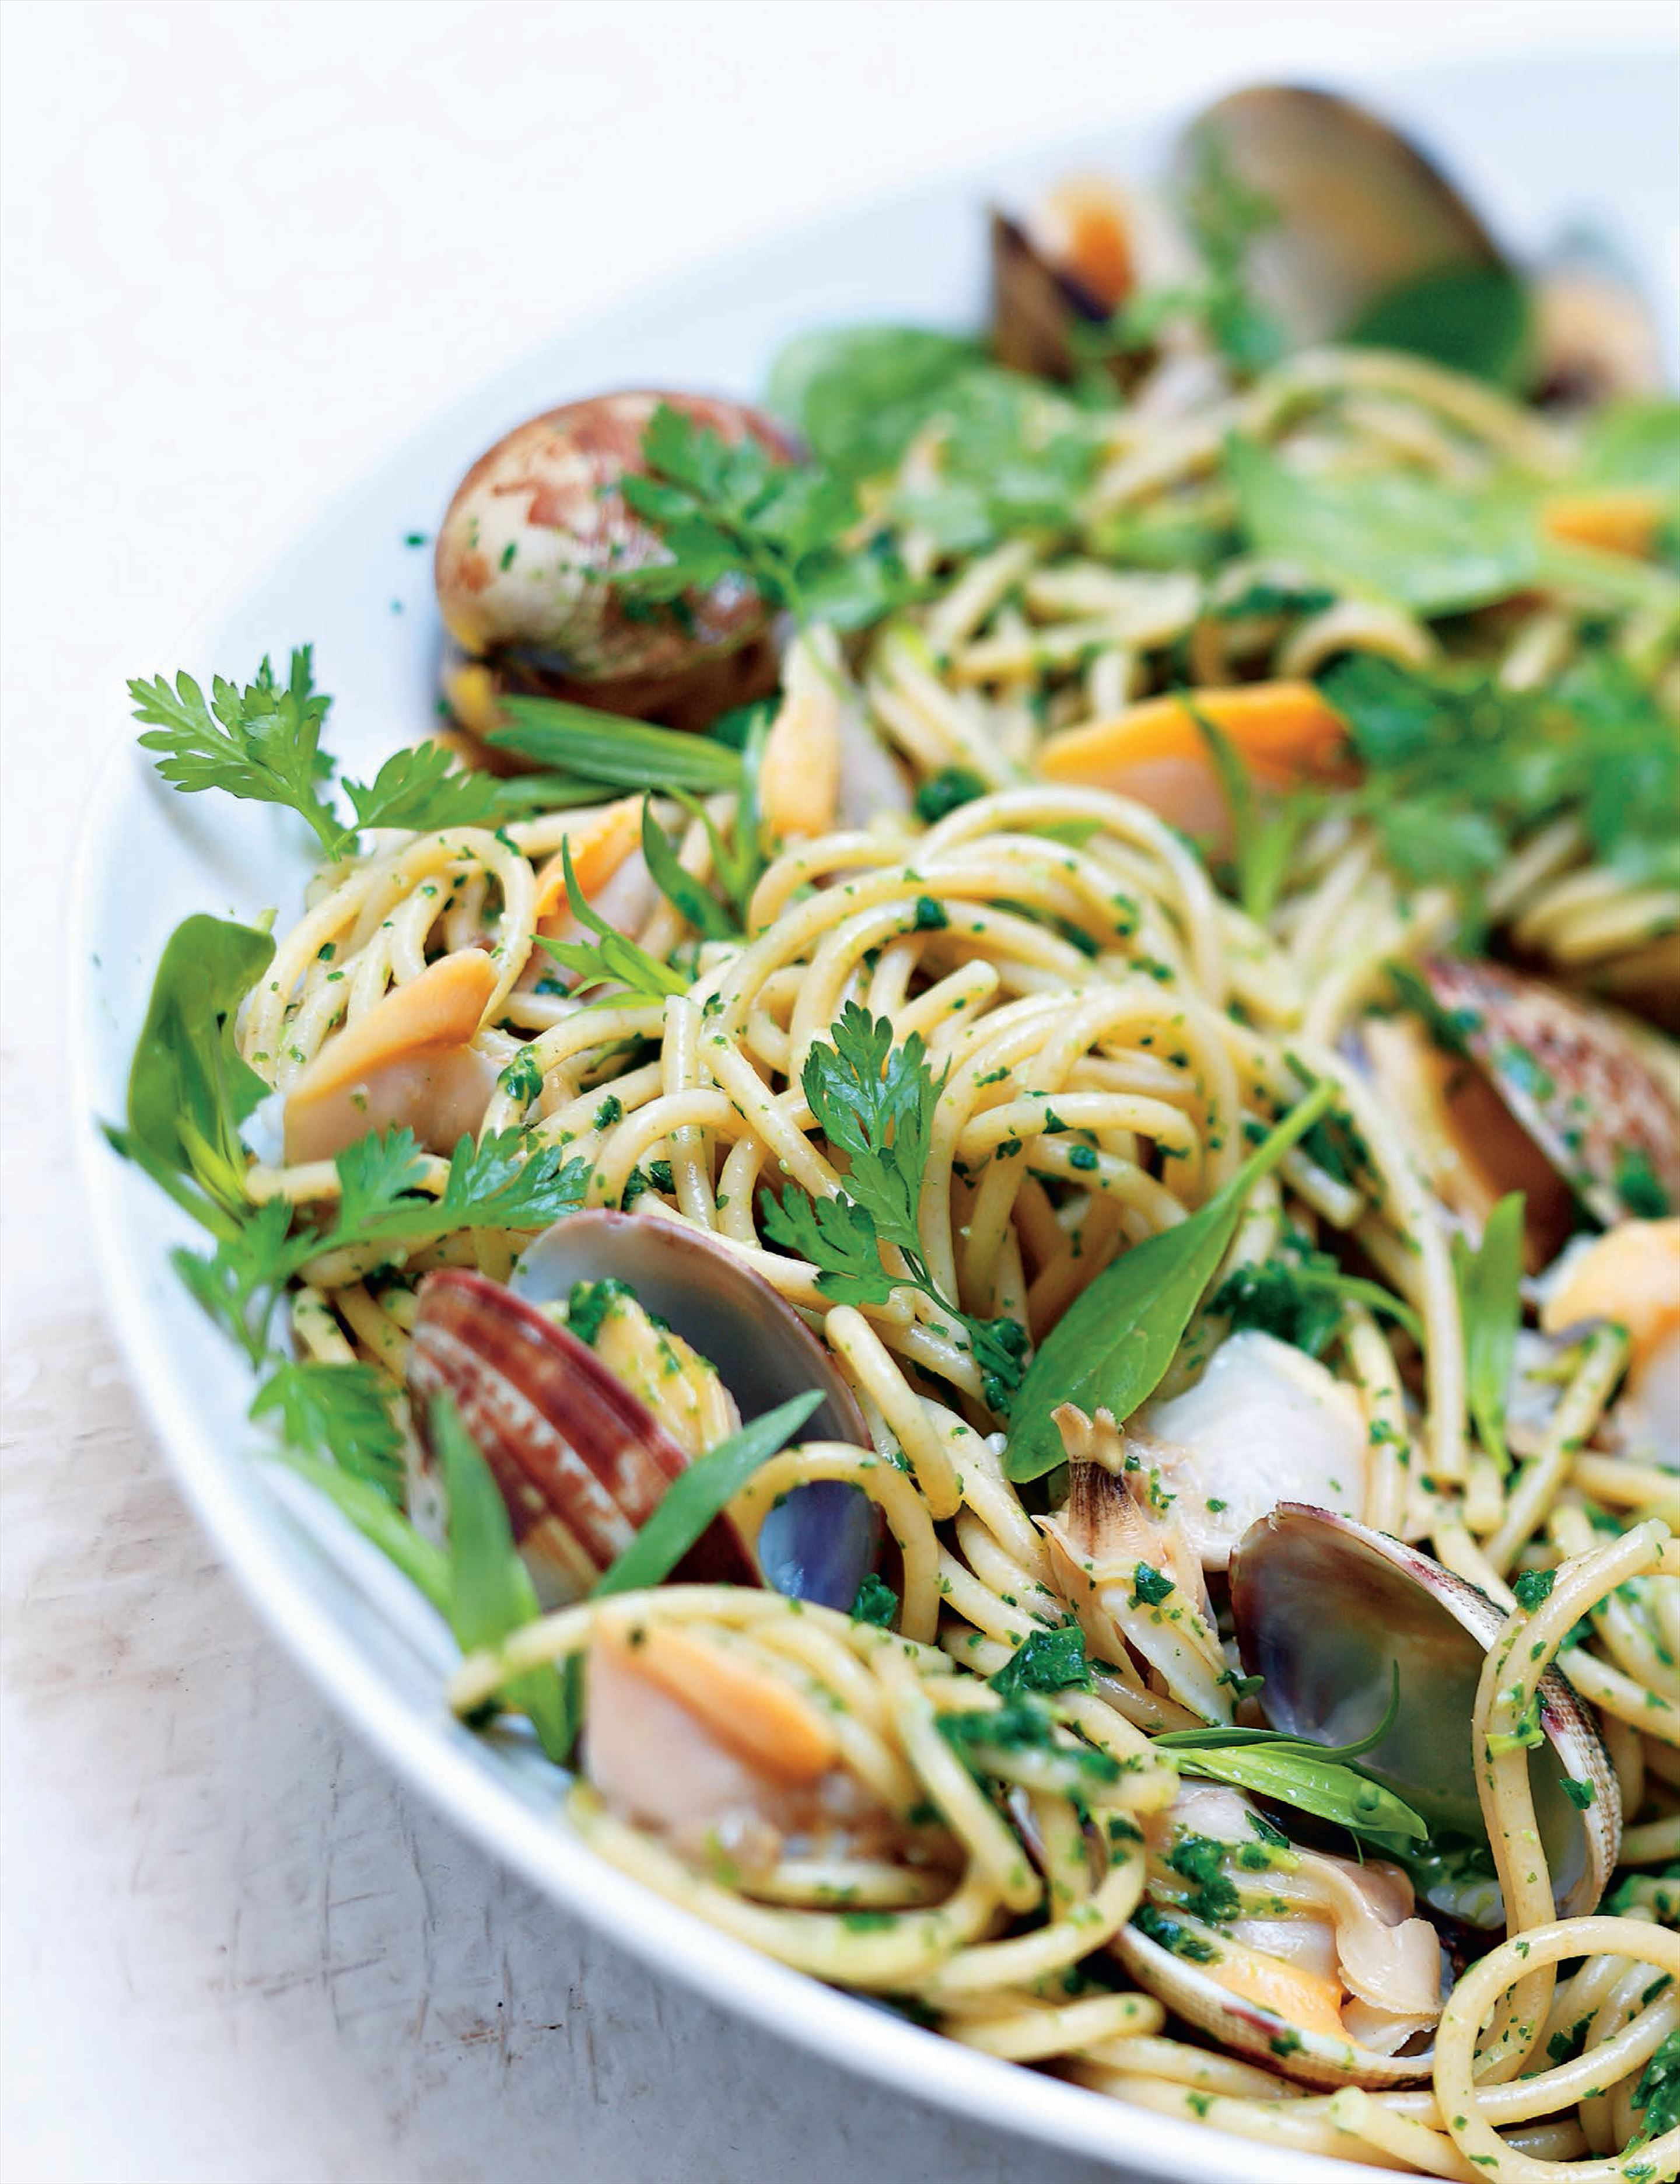 Wholemeal spaghetti with clams in a herby marinière sauce